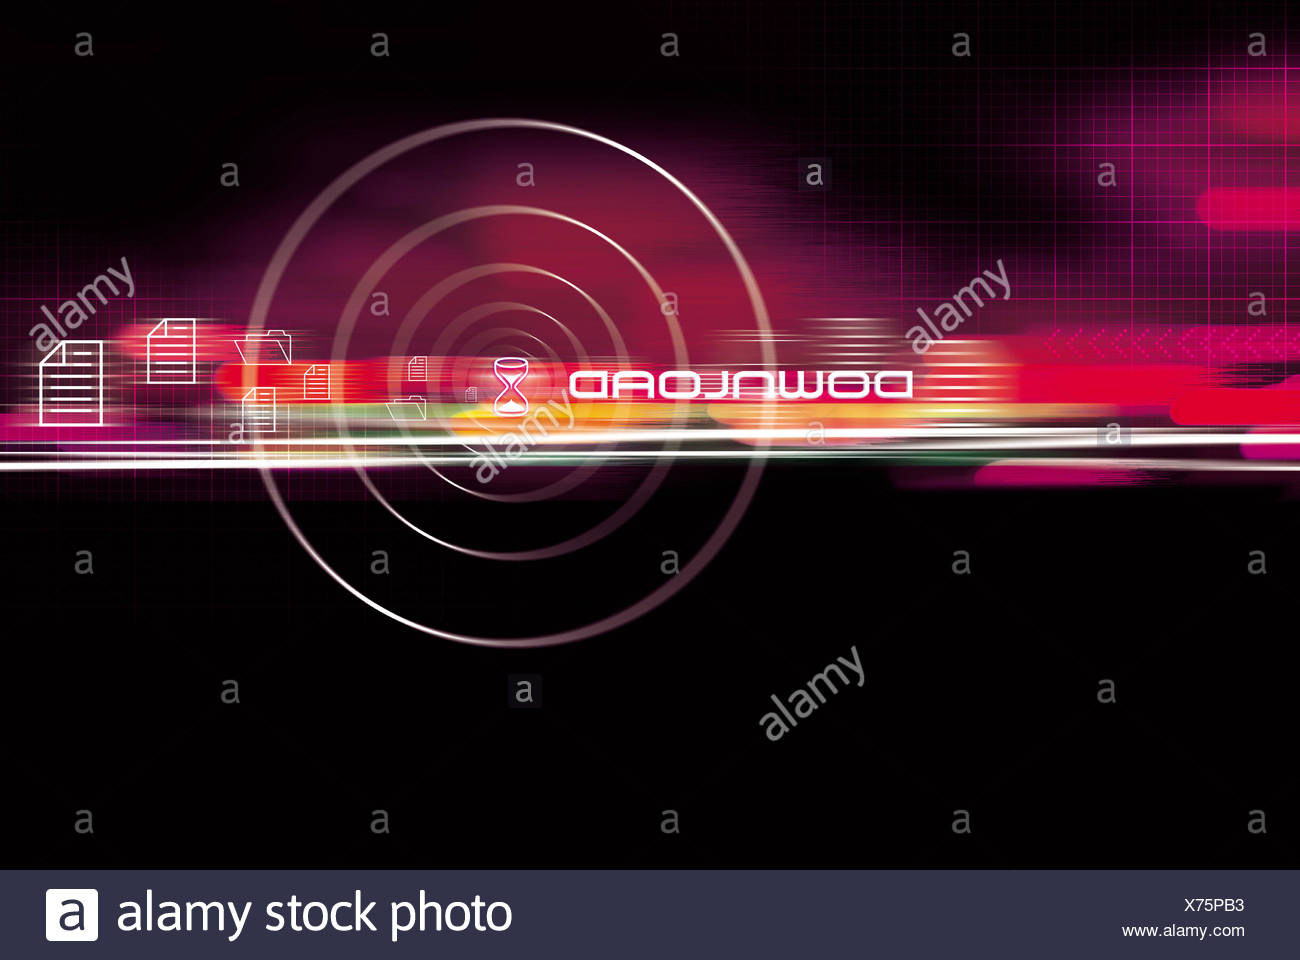 digital email free - Stock Image